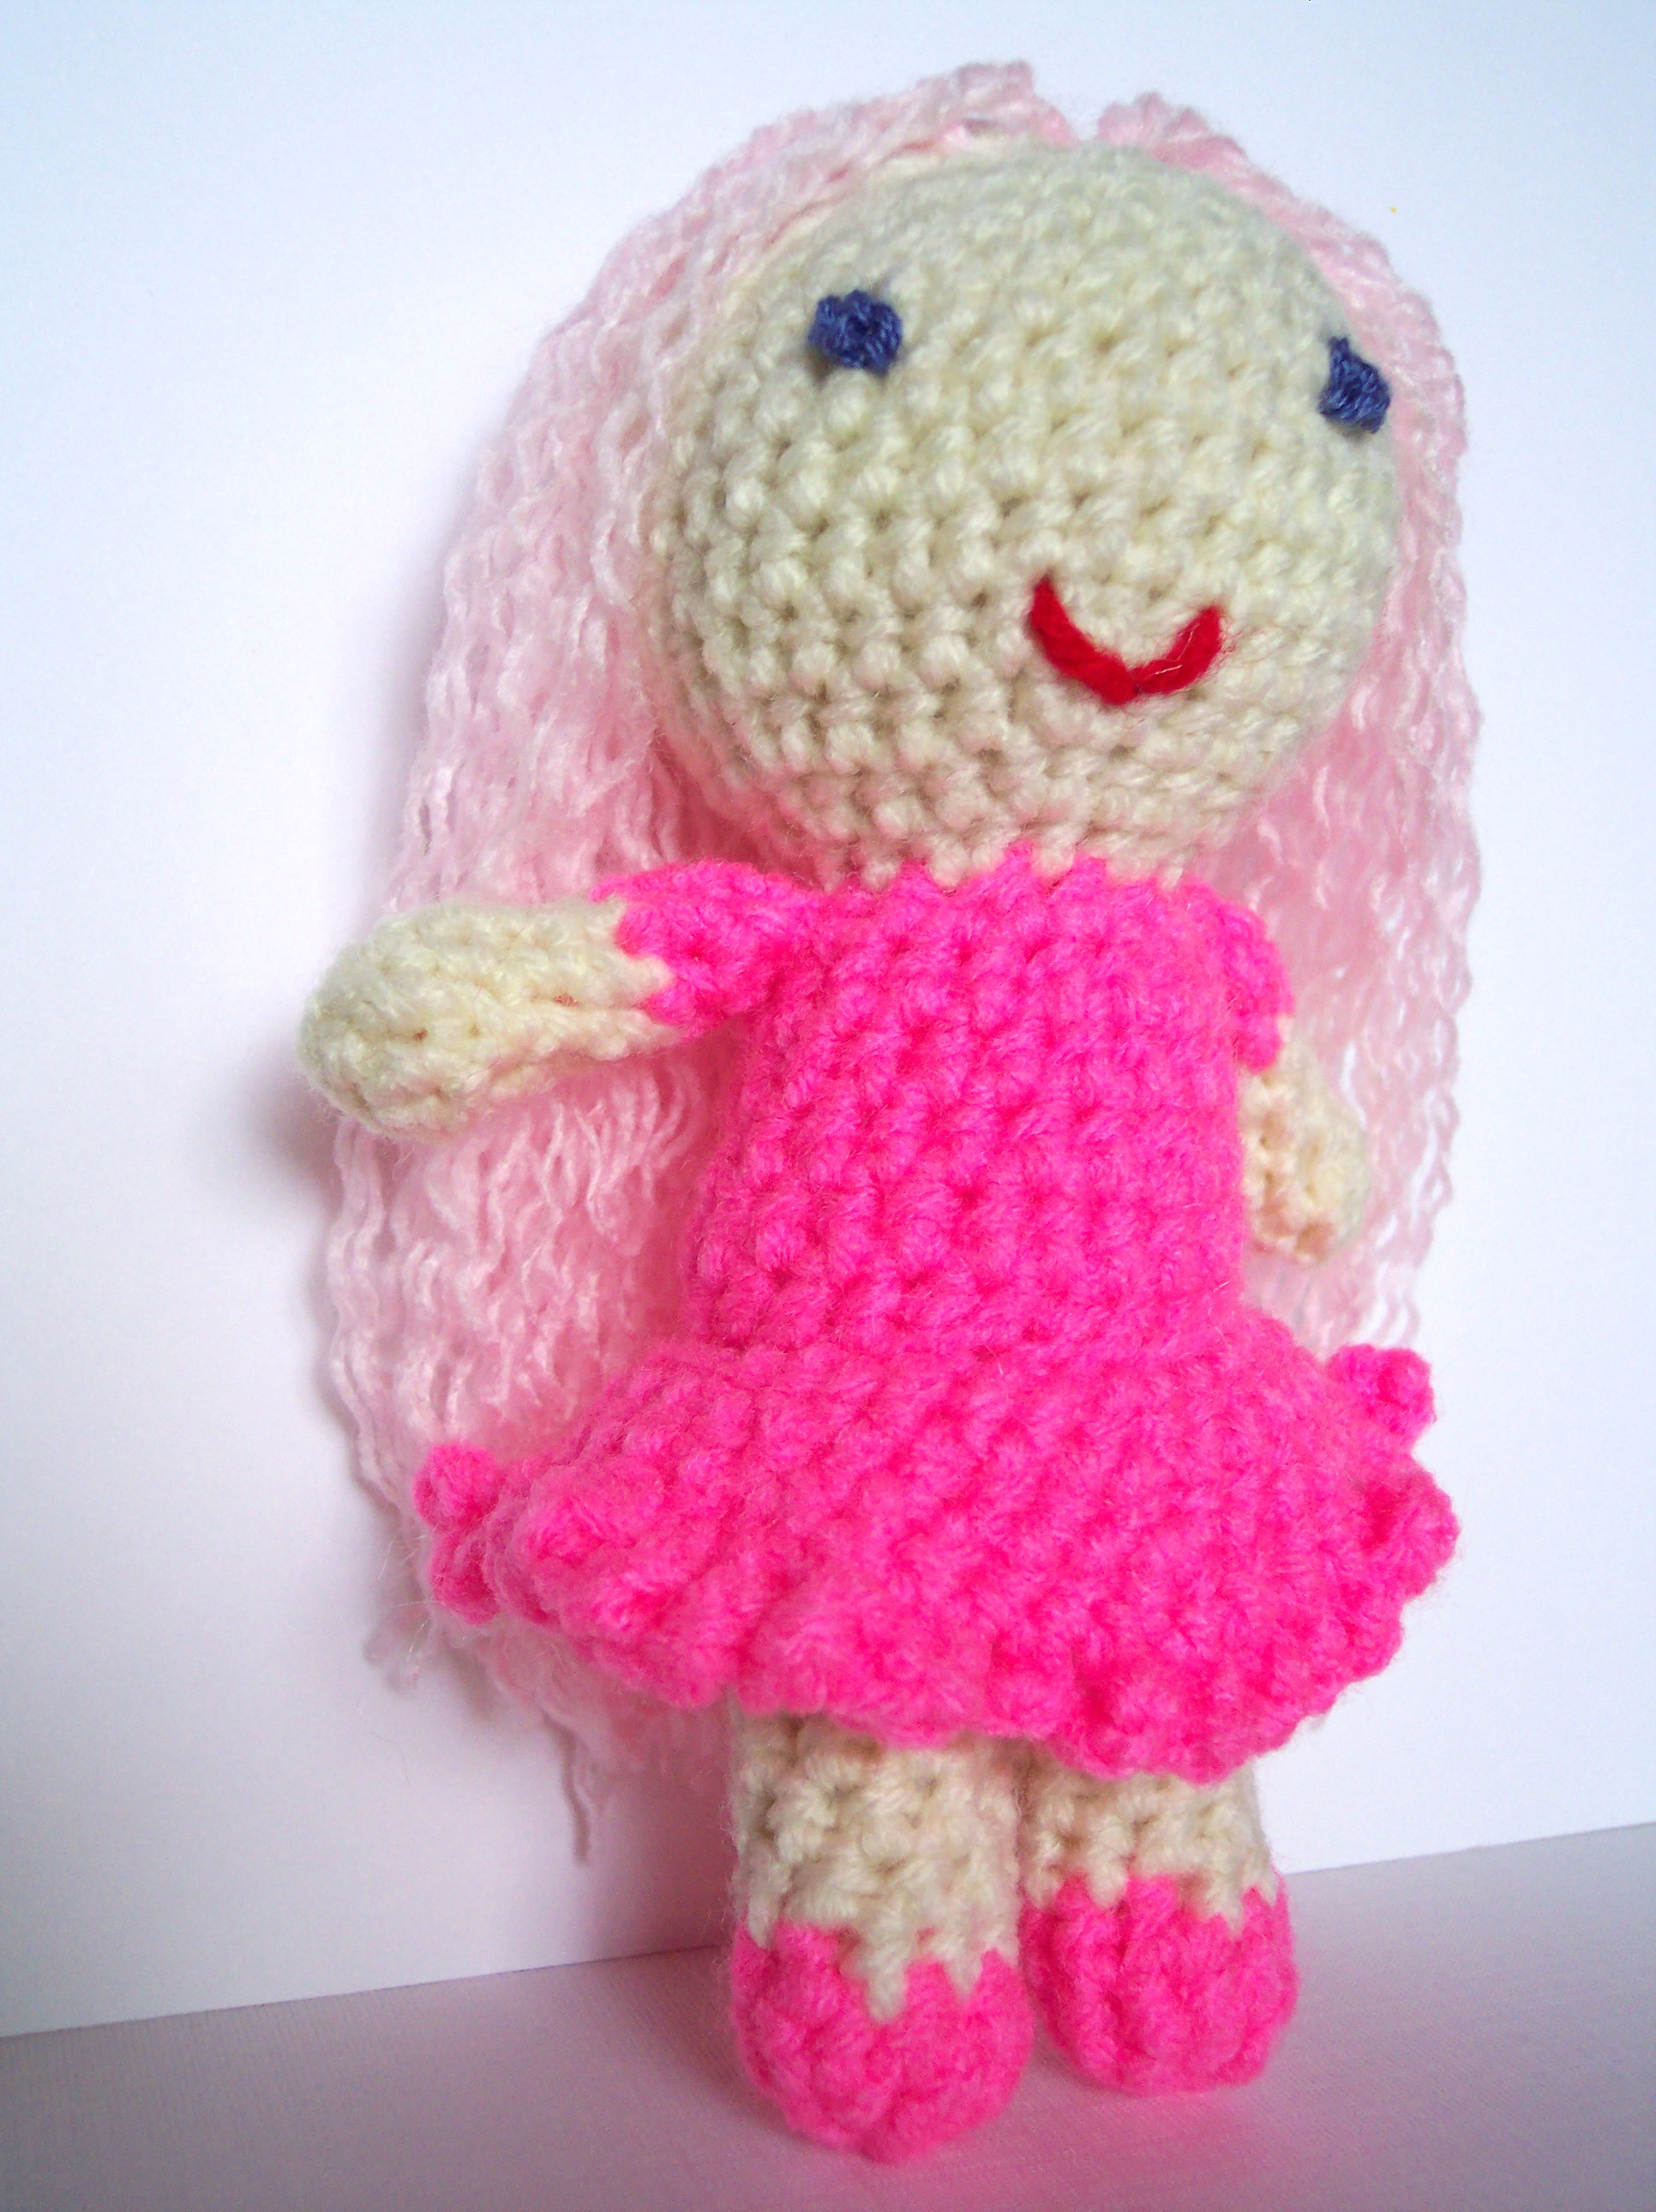 Minecraft Amigurumi Pattern Free : Another Preschool Birthday Party, Another Crocheted ...